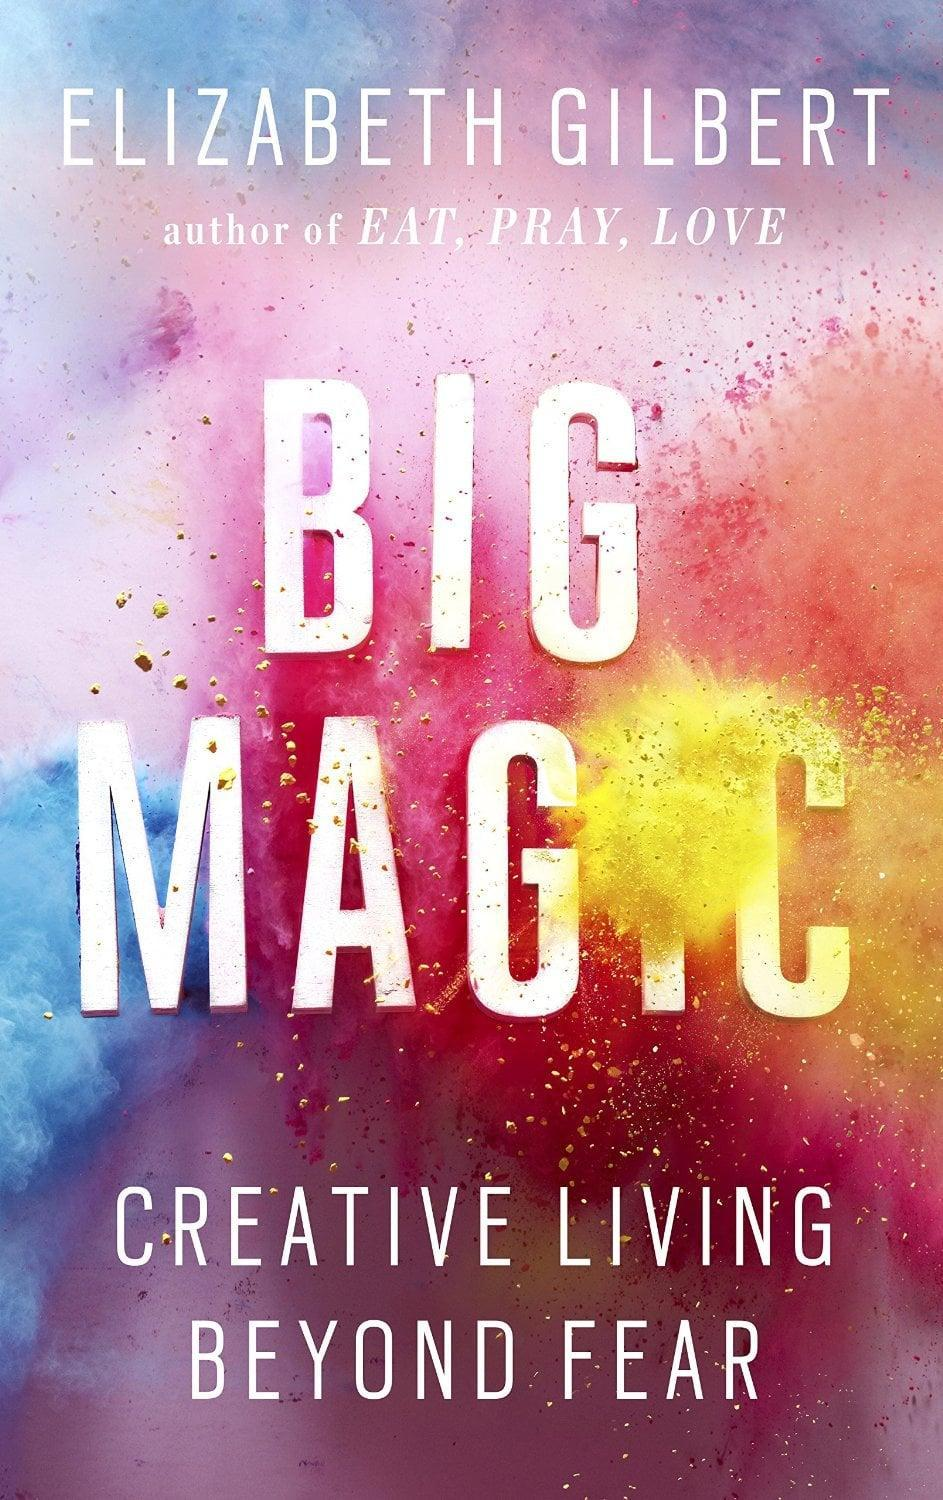 """<p>How do you tap into creativity and let go of all your fears? <a href=""""http://www.popsugar.com/smart-living/Quotes-From-Elizabeth-Gilbert-Big-Magic-37660037"""" class=""""link rapid-noclick-resp"""" rel=""""nofollow noopener"""" target=""""_blank"""" data-ylk=""""slk:Elizabeth Gilbert"""">Elizabeth Gilbert</a> answers this so wisely in <span>Big Magic</span> - each page will inspire and motivate you to be your best creative self and allow the magic to happen. </p>"""